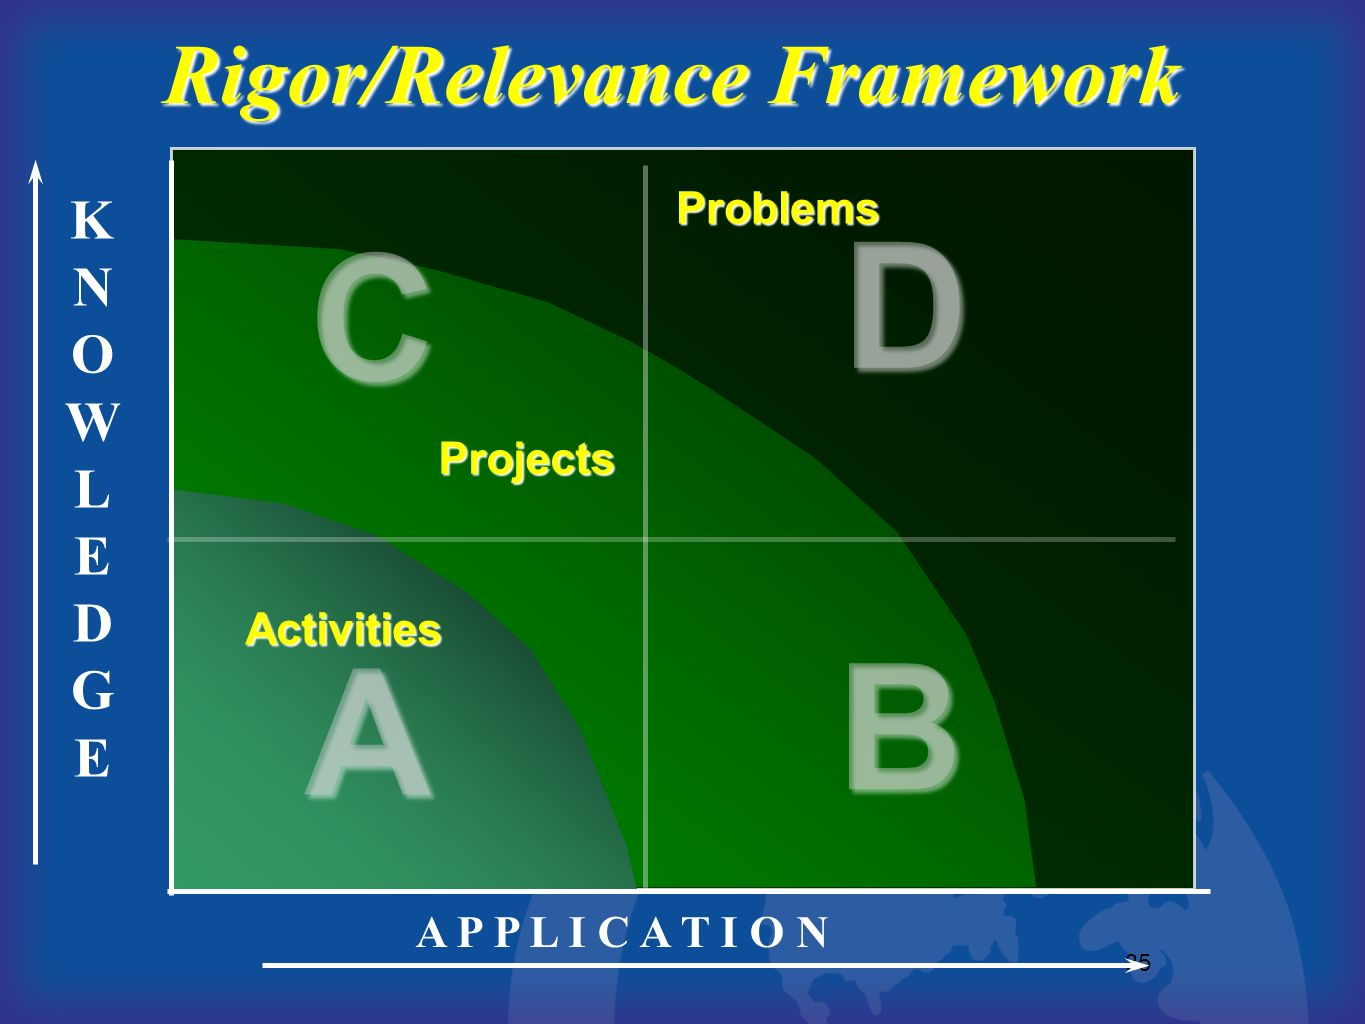 35 KNOWLEDGEKNOWLEDGE A P P L I C A T I O N A B D C Rigor/Relevance Framework Activities Projects Problems